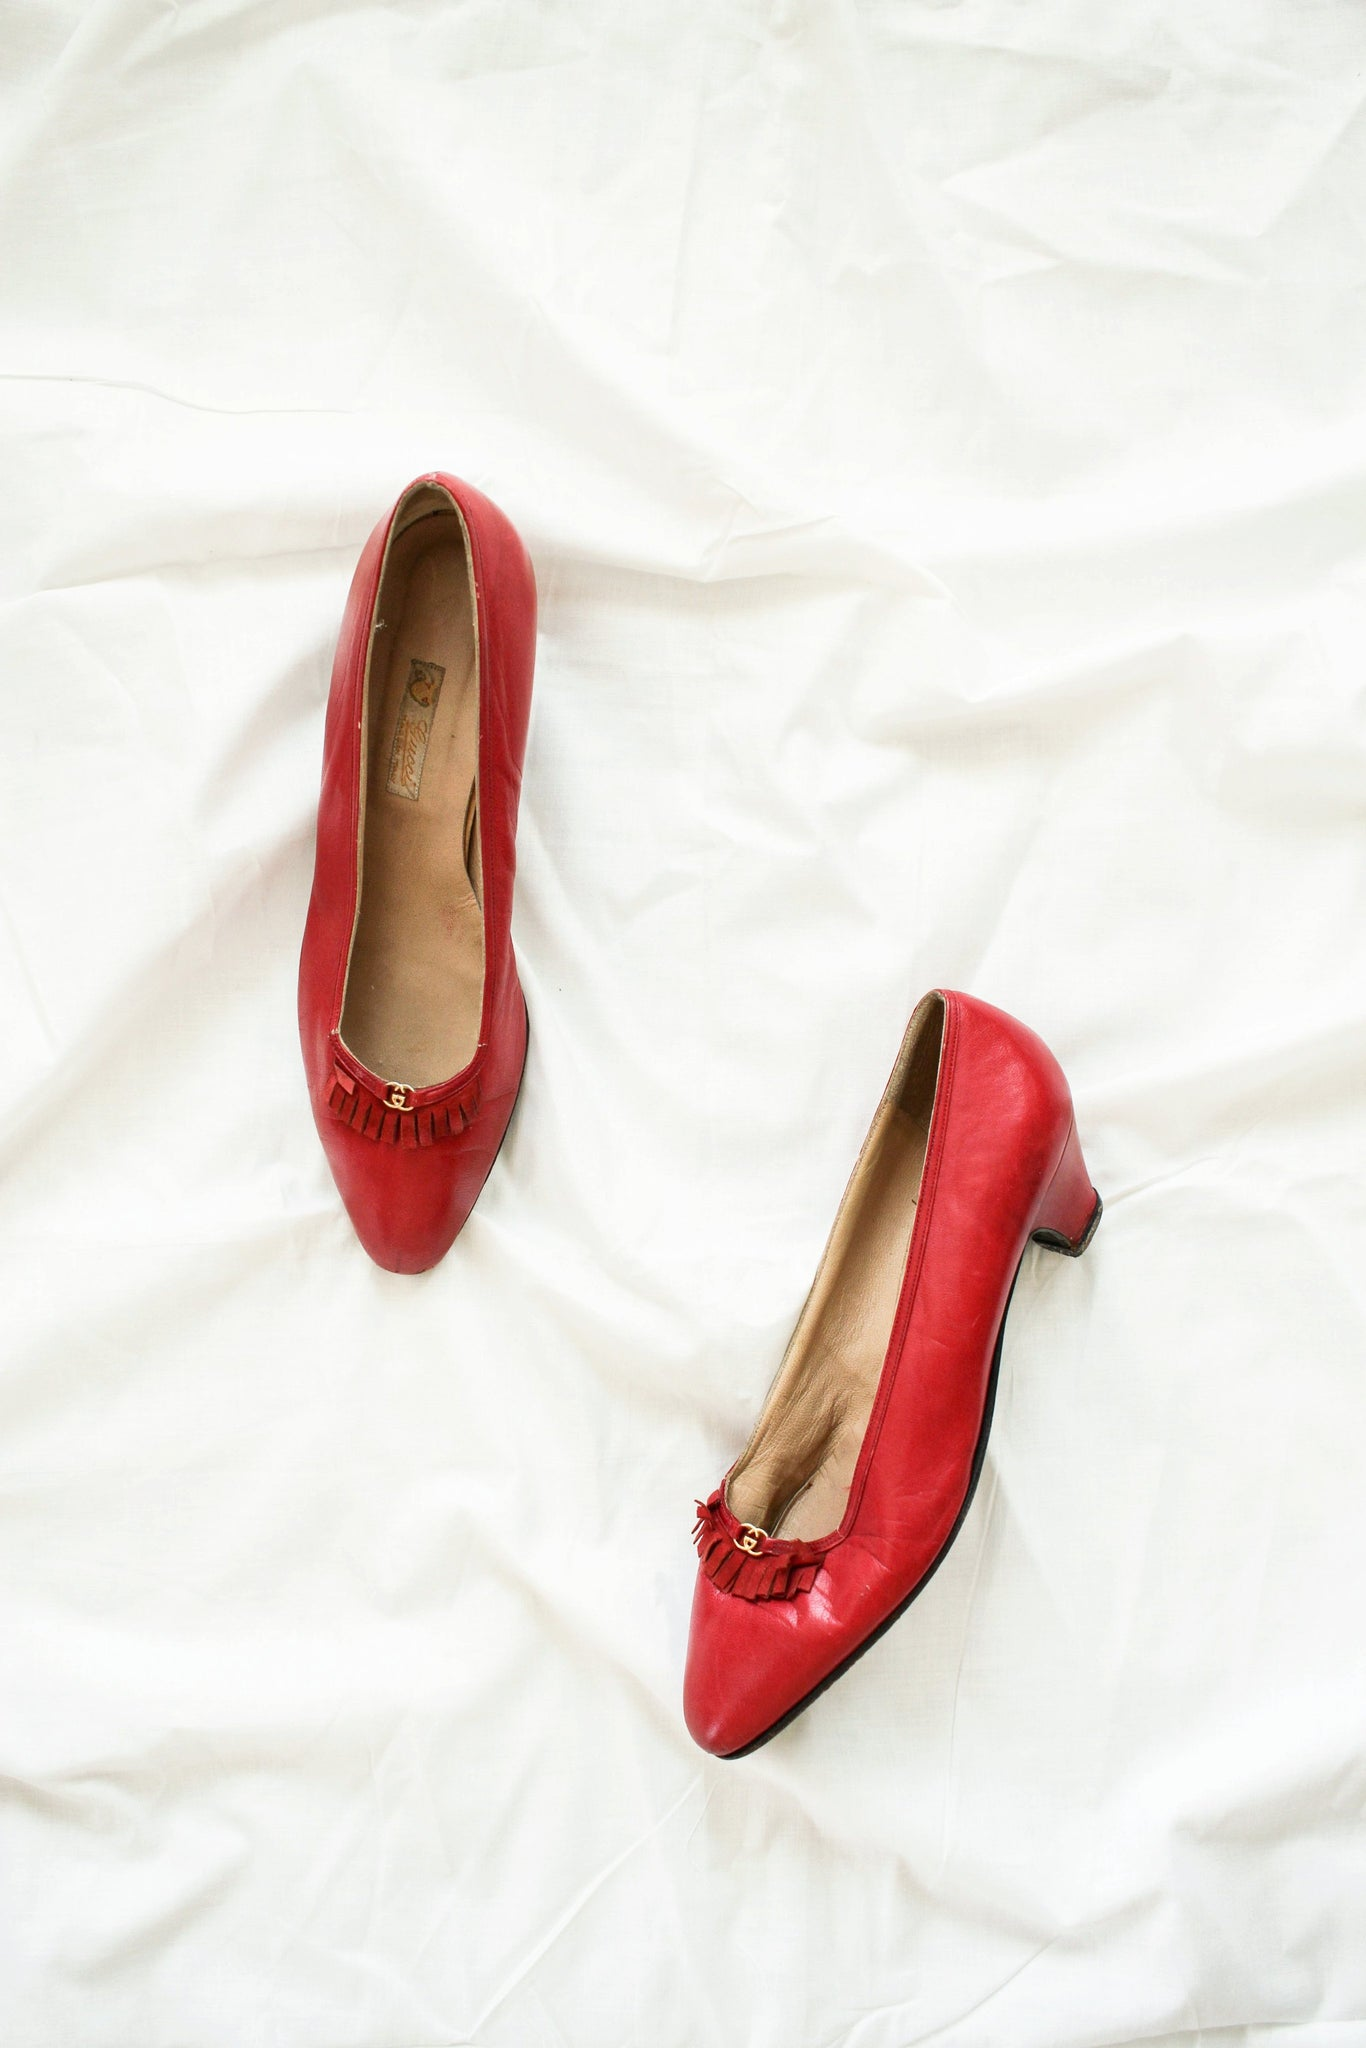 1960s Gucci Red Leather Heels | 7.5